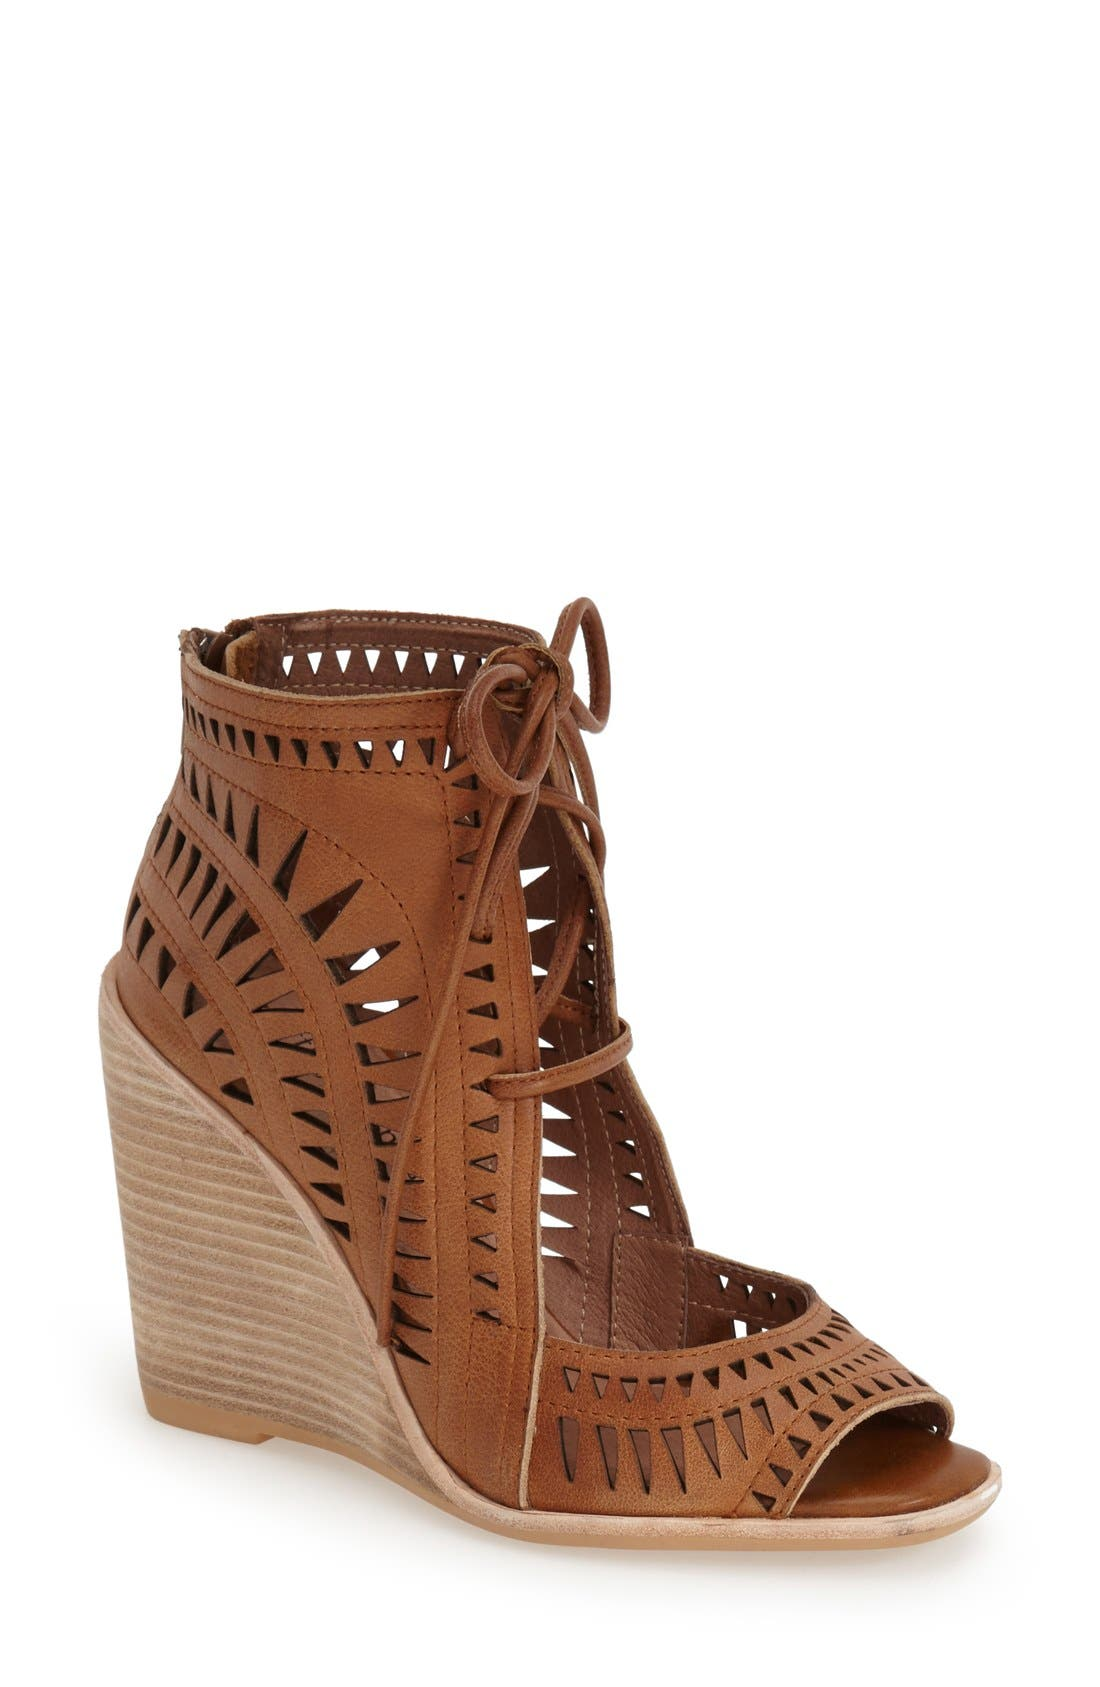 Alternate Image 1 Selected - Jeffrey Campbell 'Rodillo-Hi' Wedge Sandal (Women)